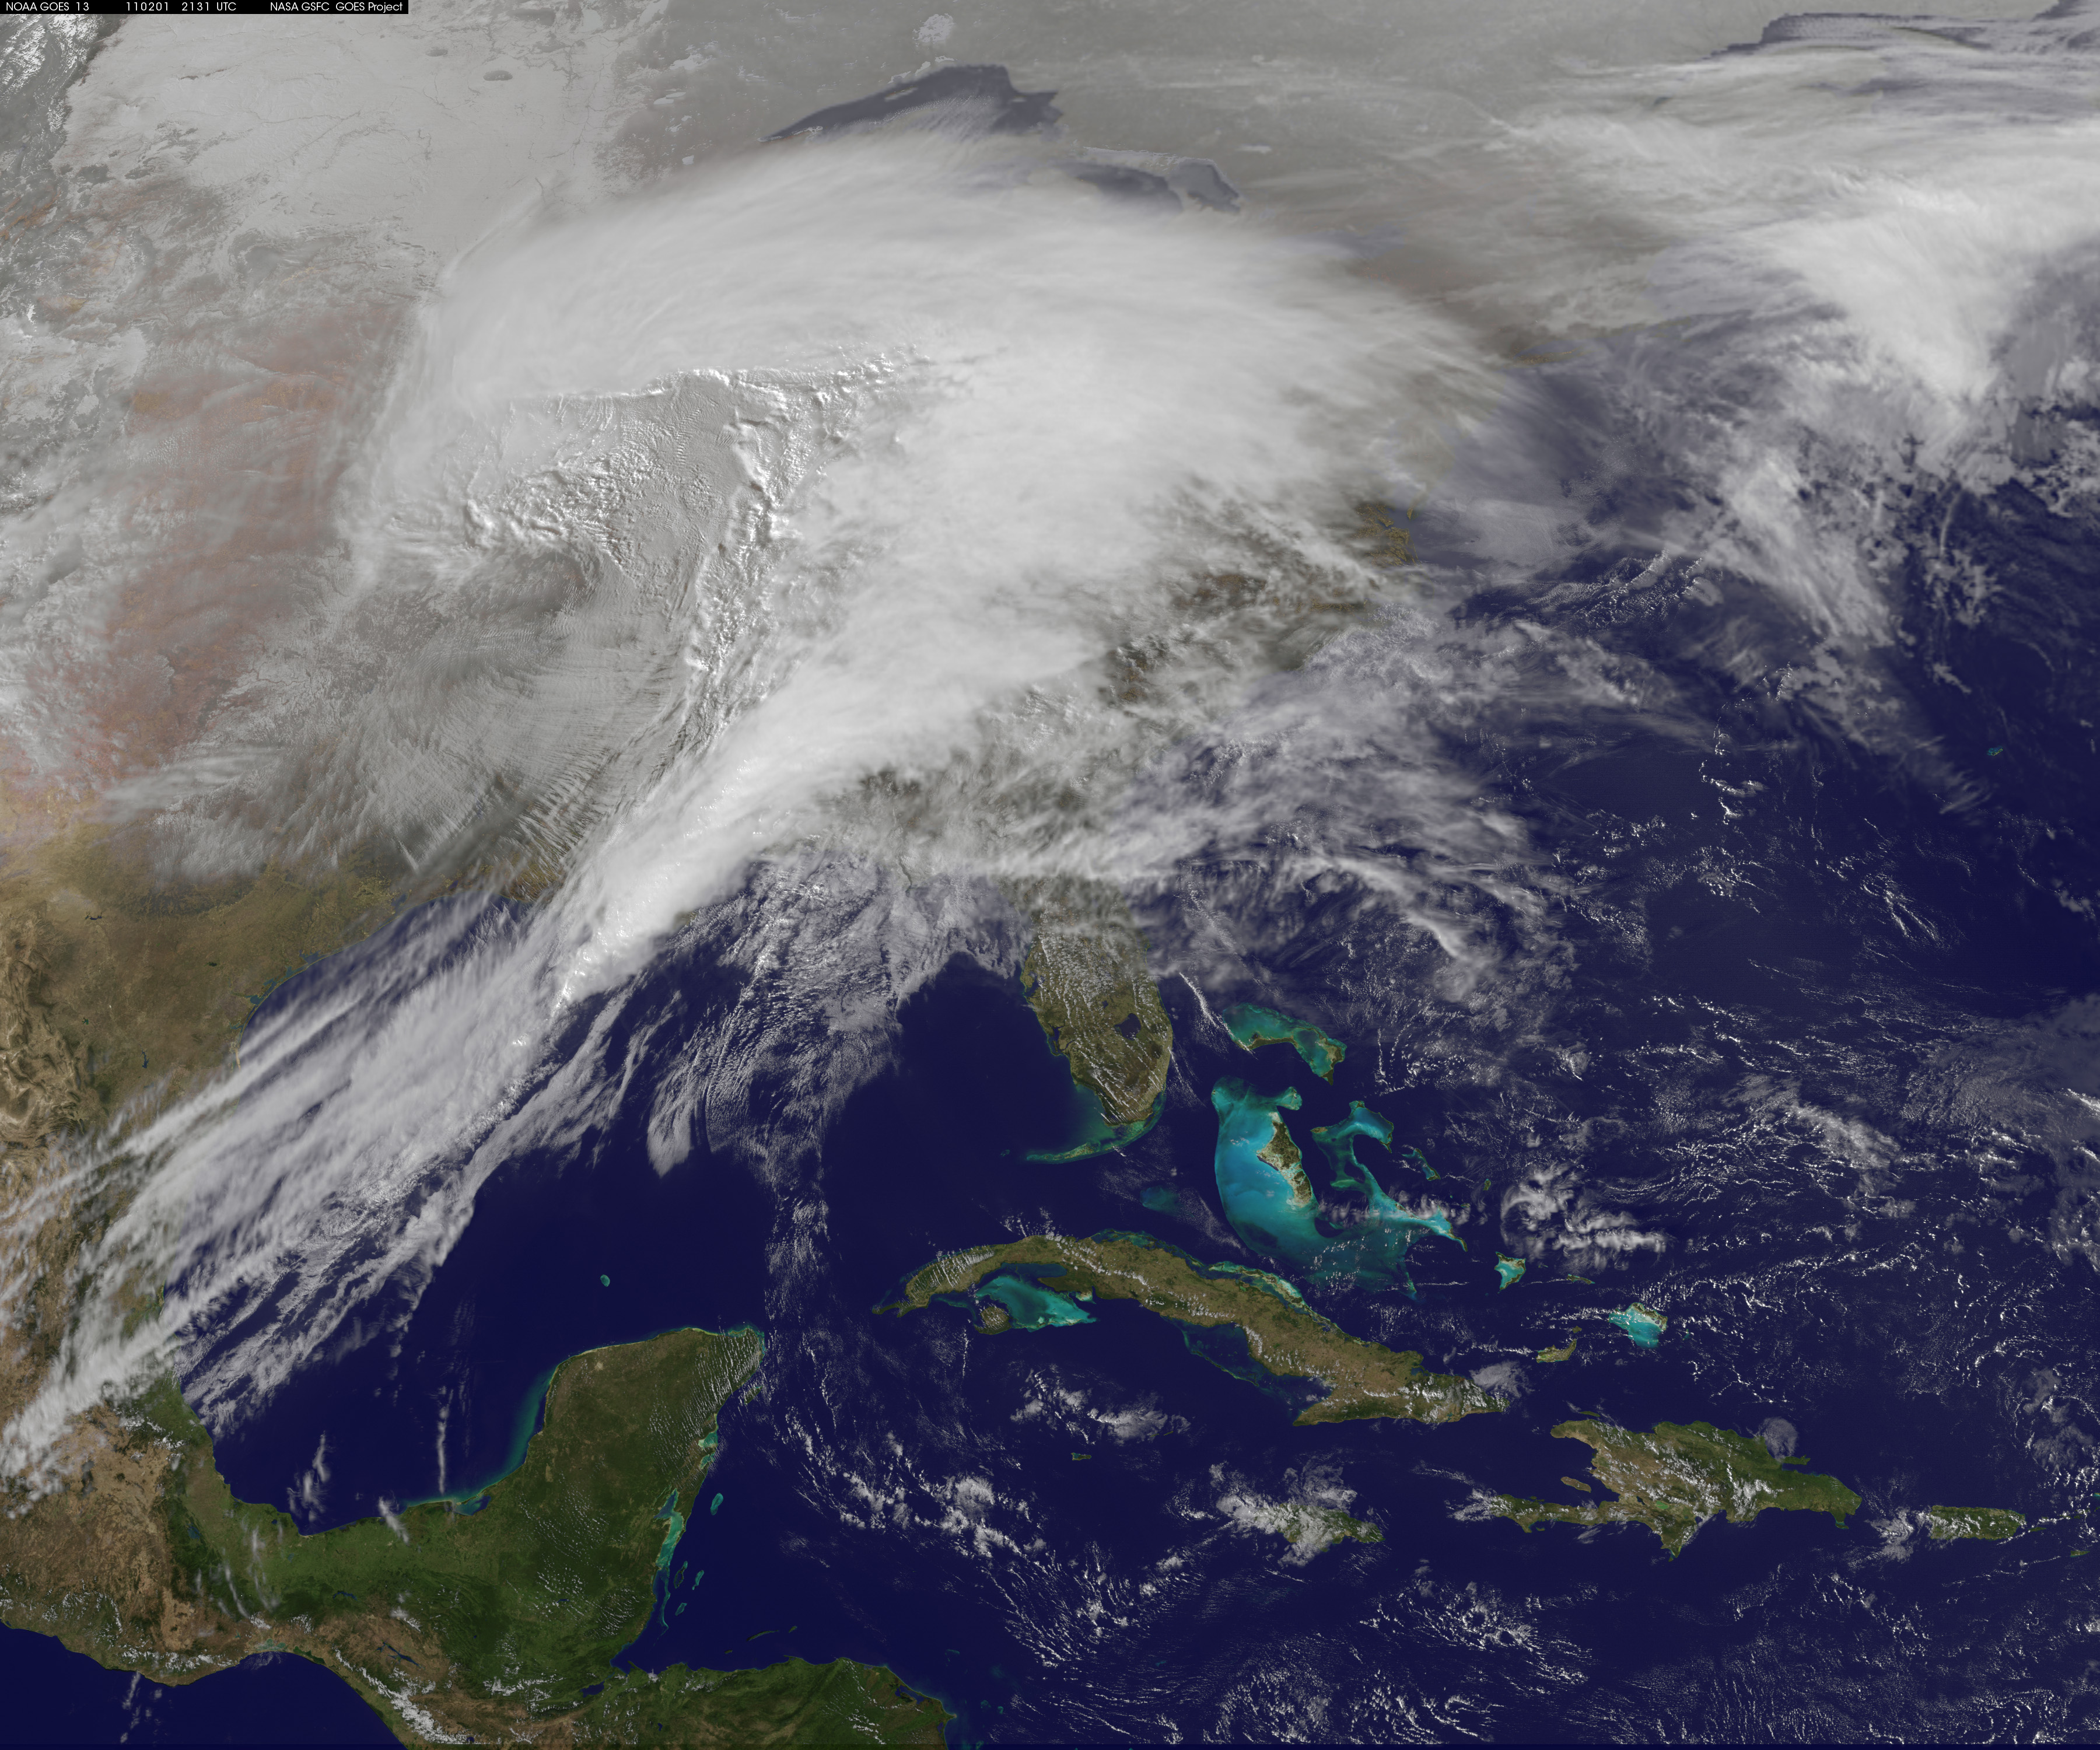 Watch the Winter Storm Attack (as seen from space)